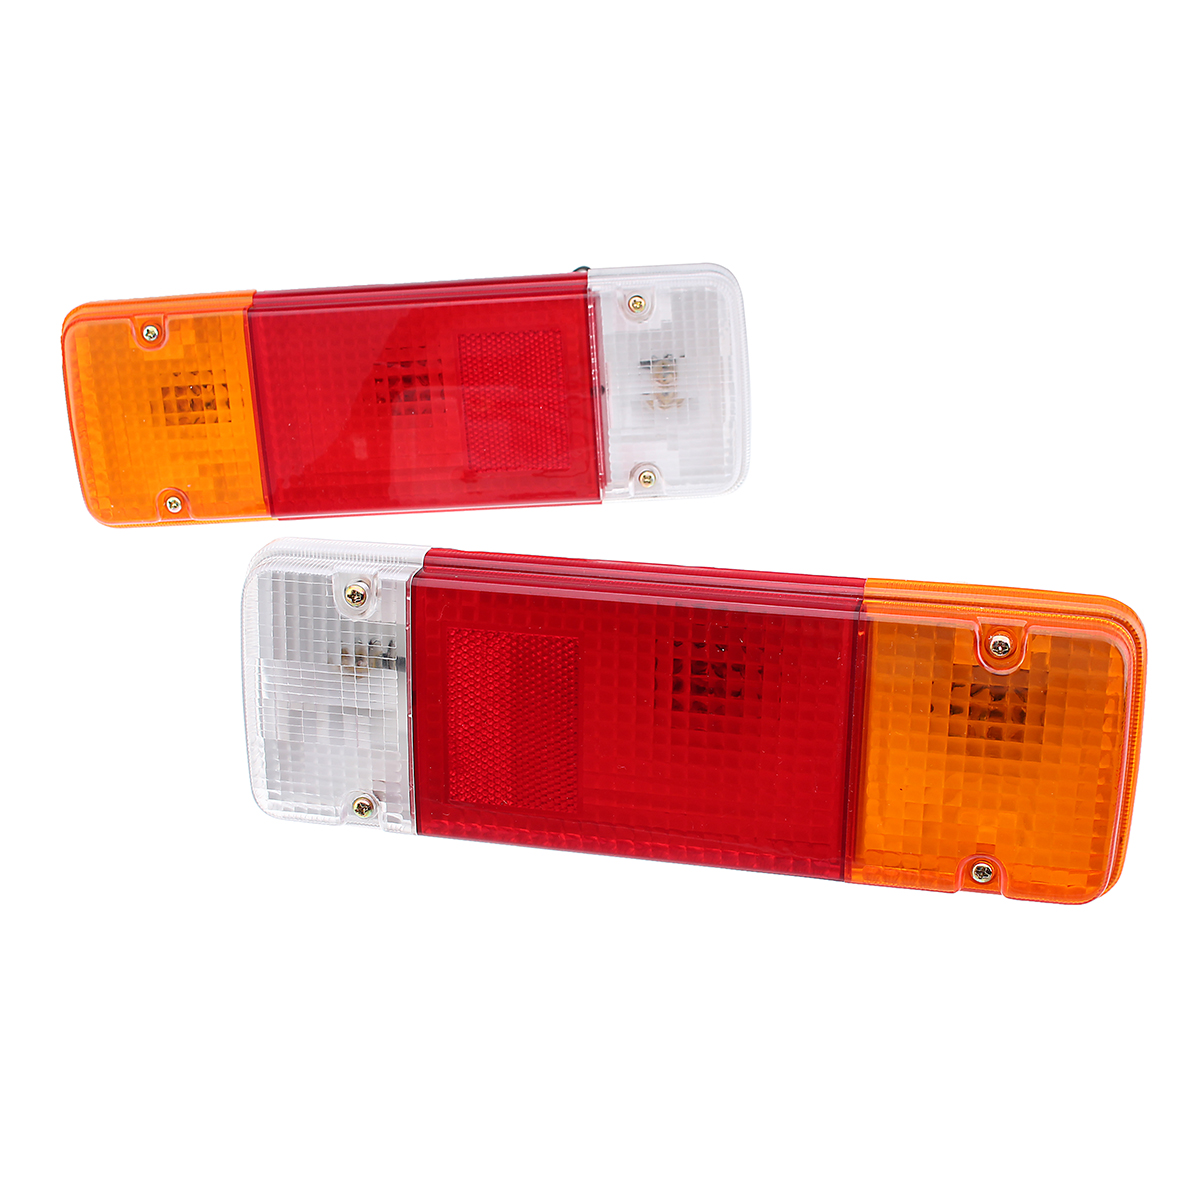 2Pcs 12V Car Tail Light Brake Lamps for Toyota Land Cruiser 70 75 78 79 Series Pickup 84-18